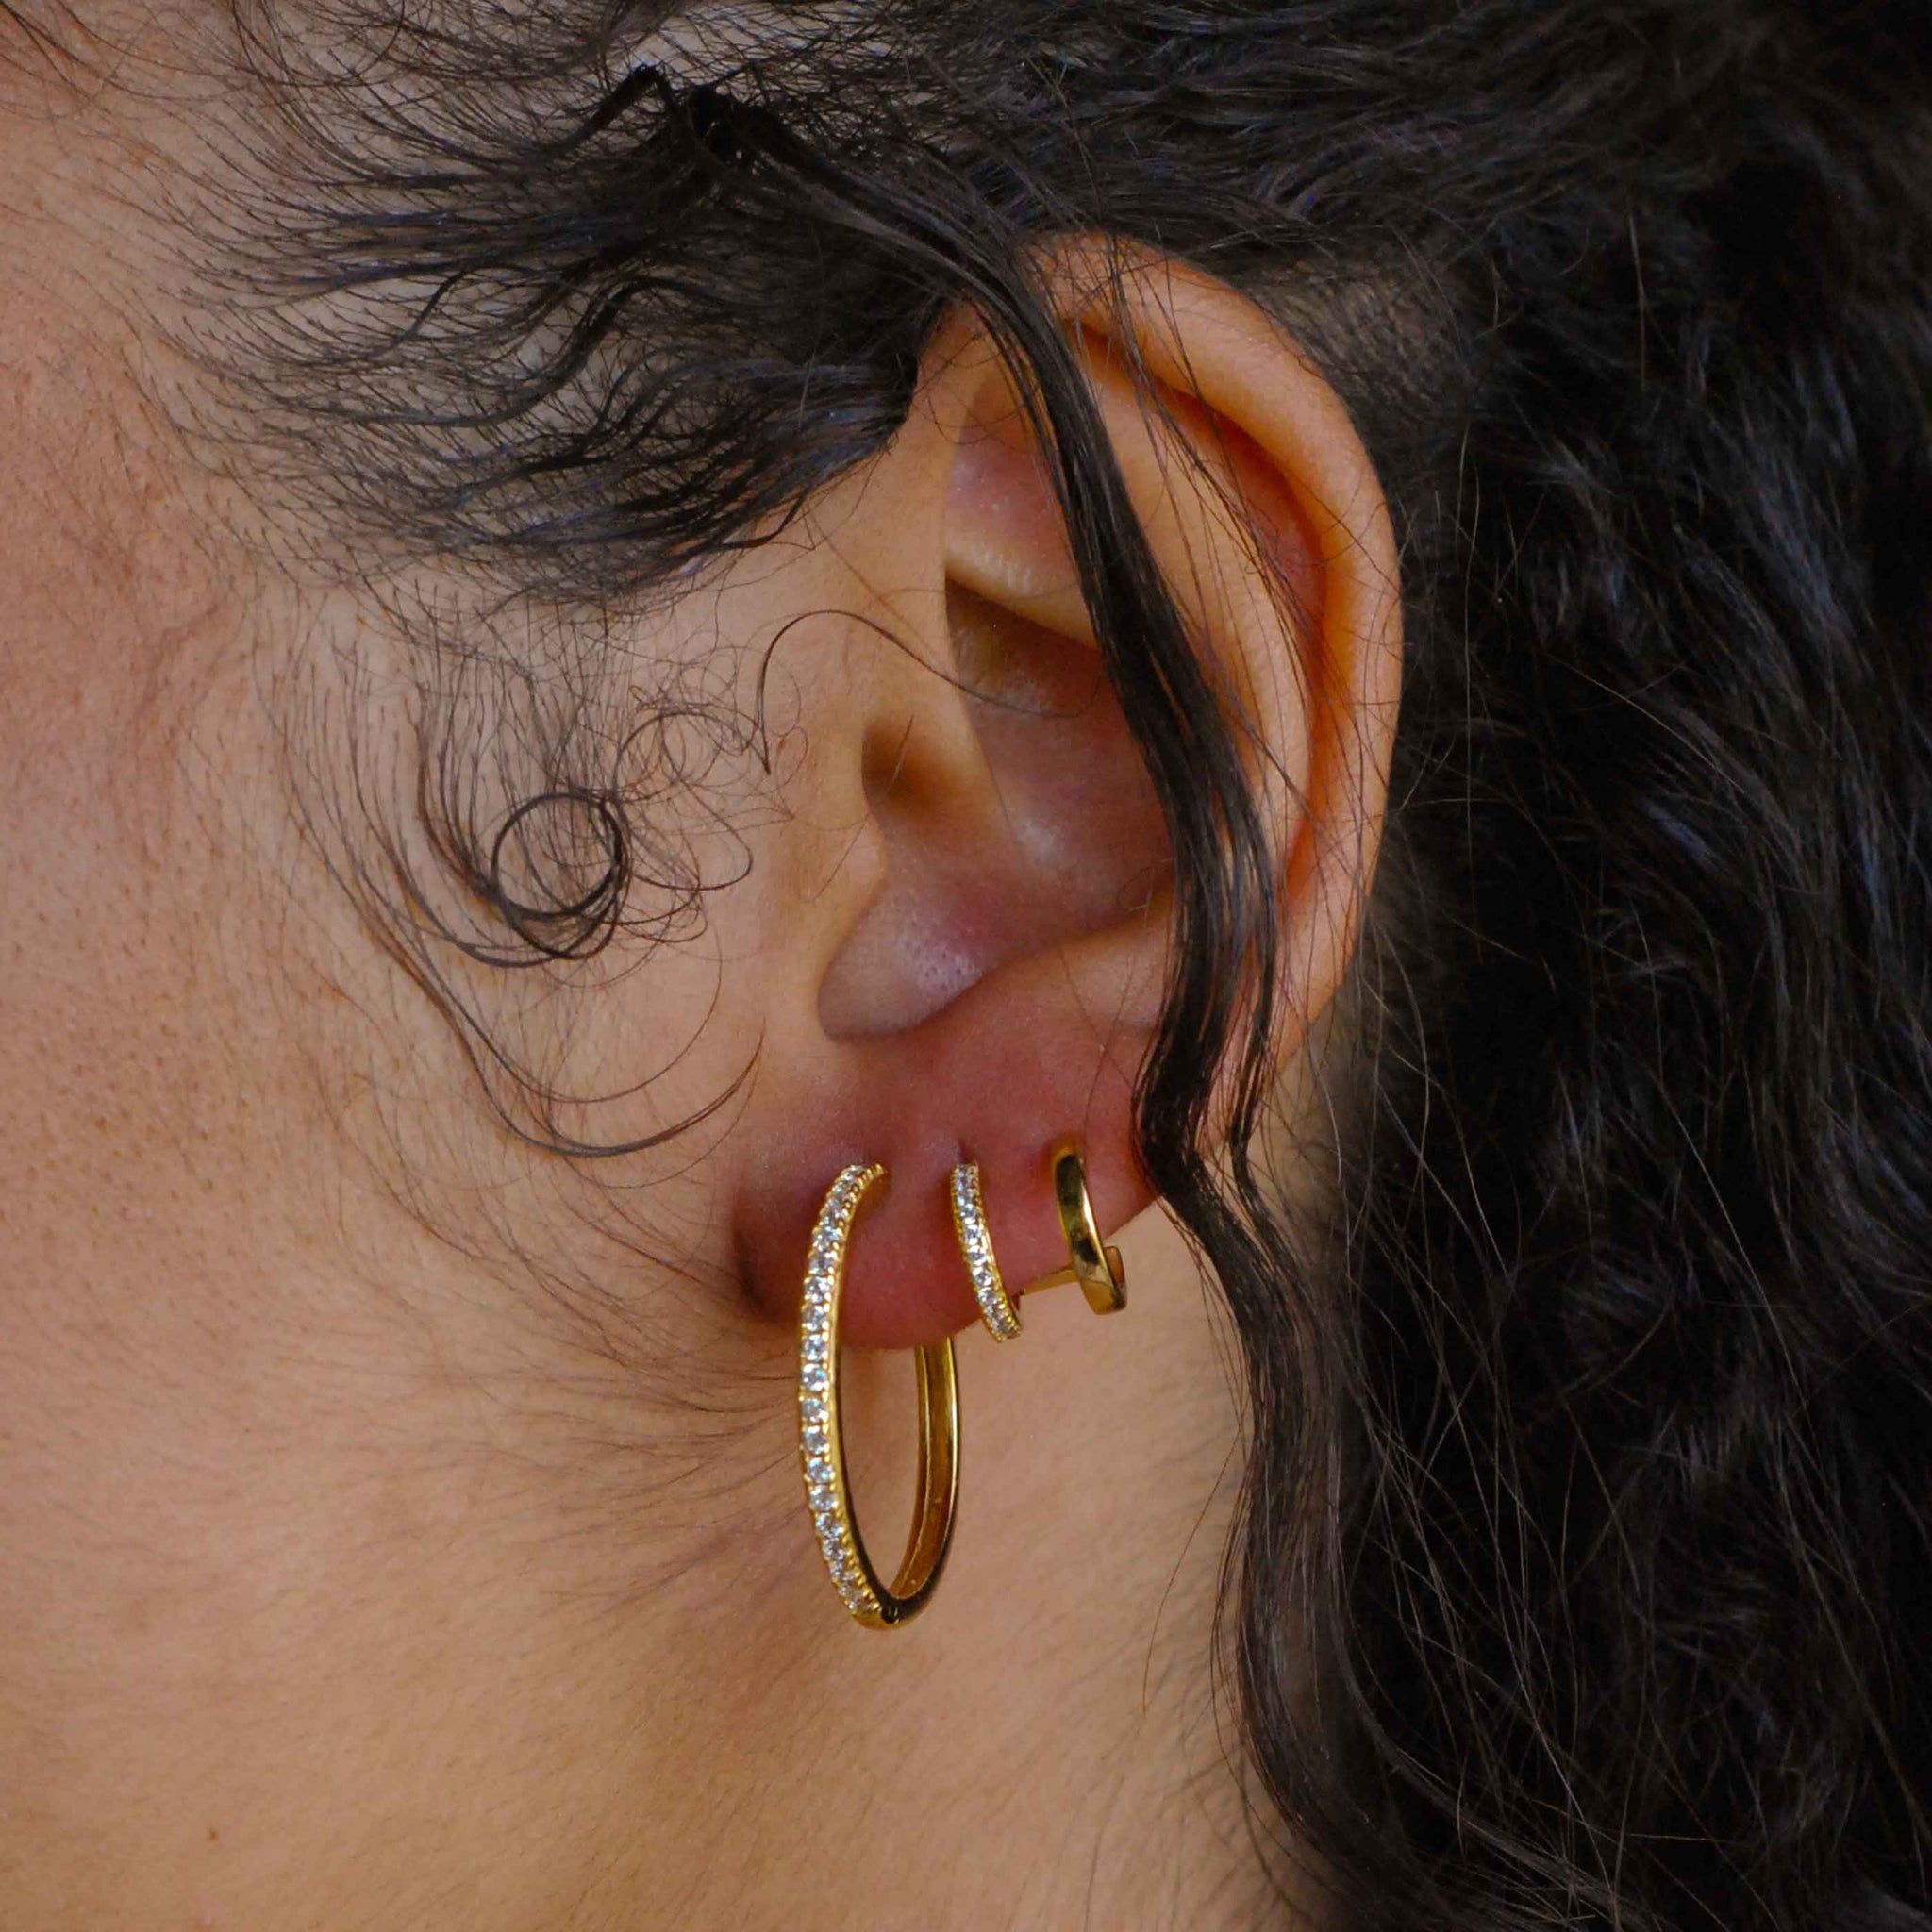 Crystal Hinge Hoops in Gold worn with illusion stud earrings in gold